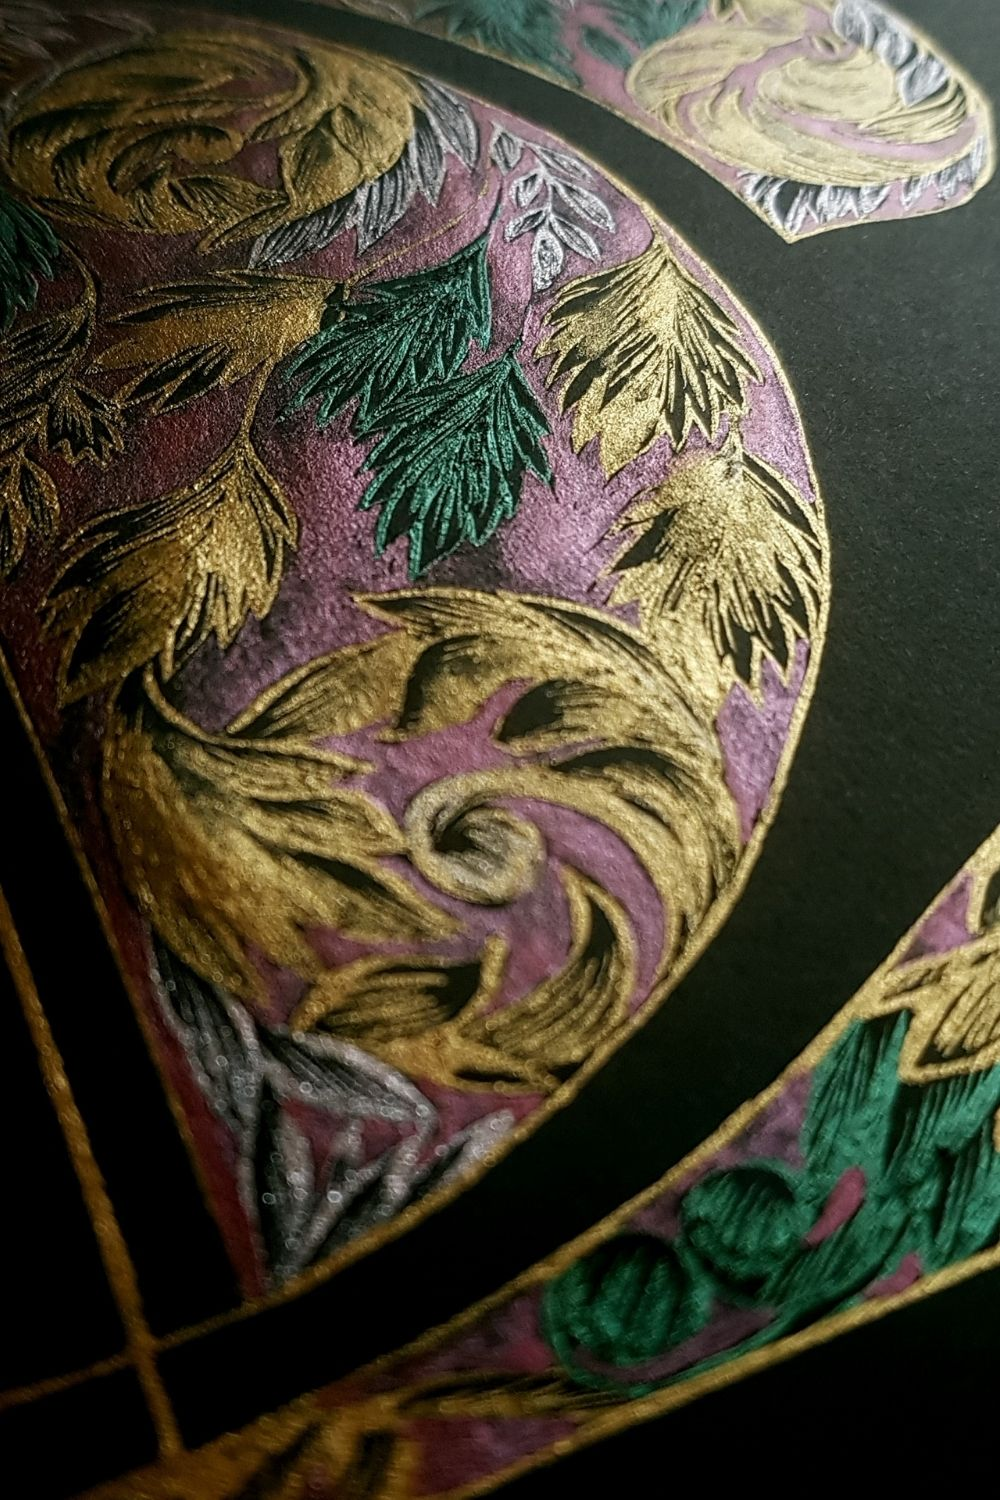 Luxury hand drawn logo design, inspired by a romantic baroque style design with deep magenta and gold tones